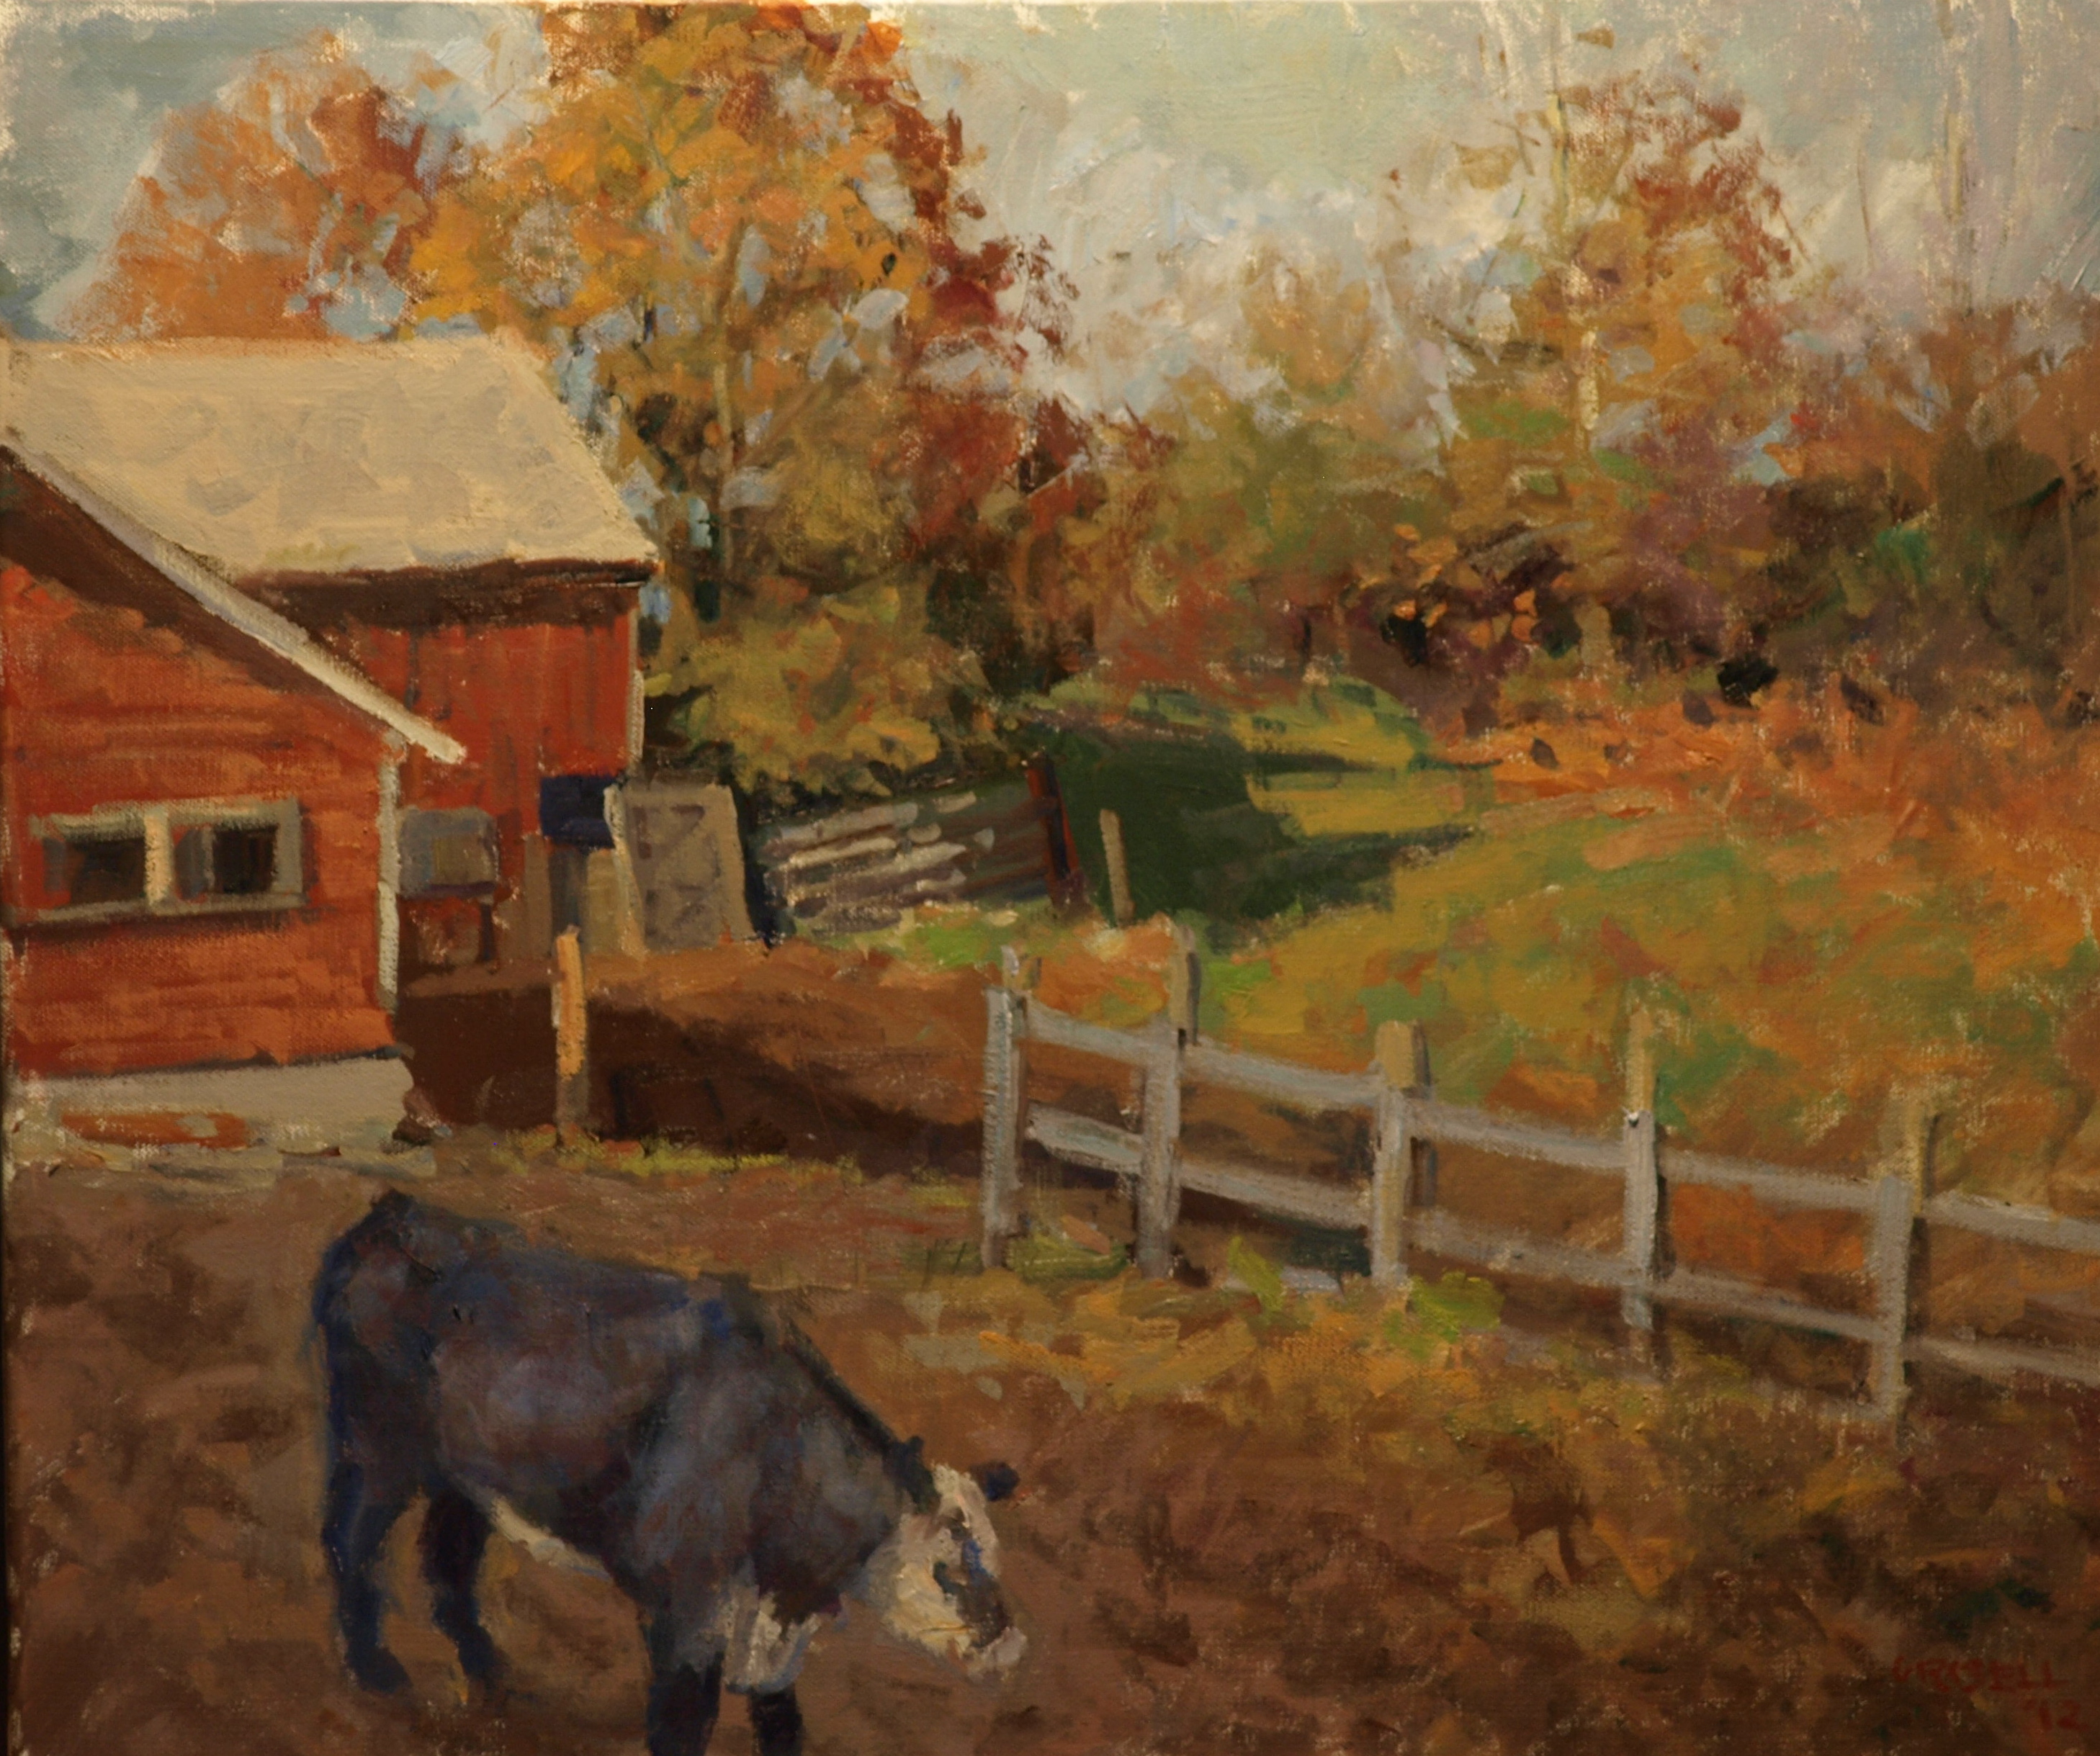 Newton Farm - October, Oil on Canvas, 20 x 24 Inches, by Susan Grisell, $650